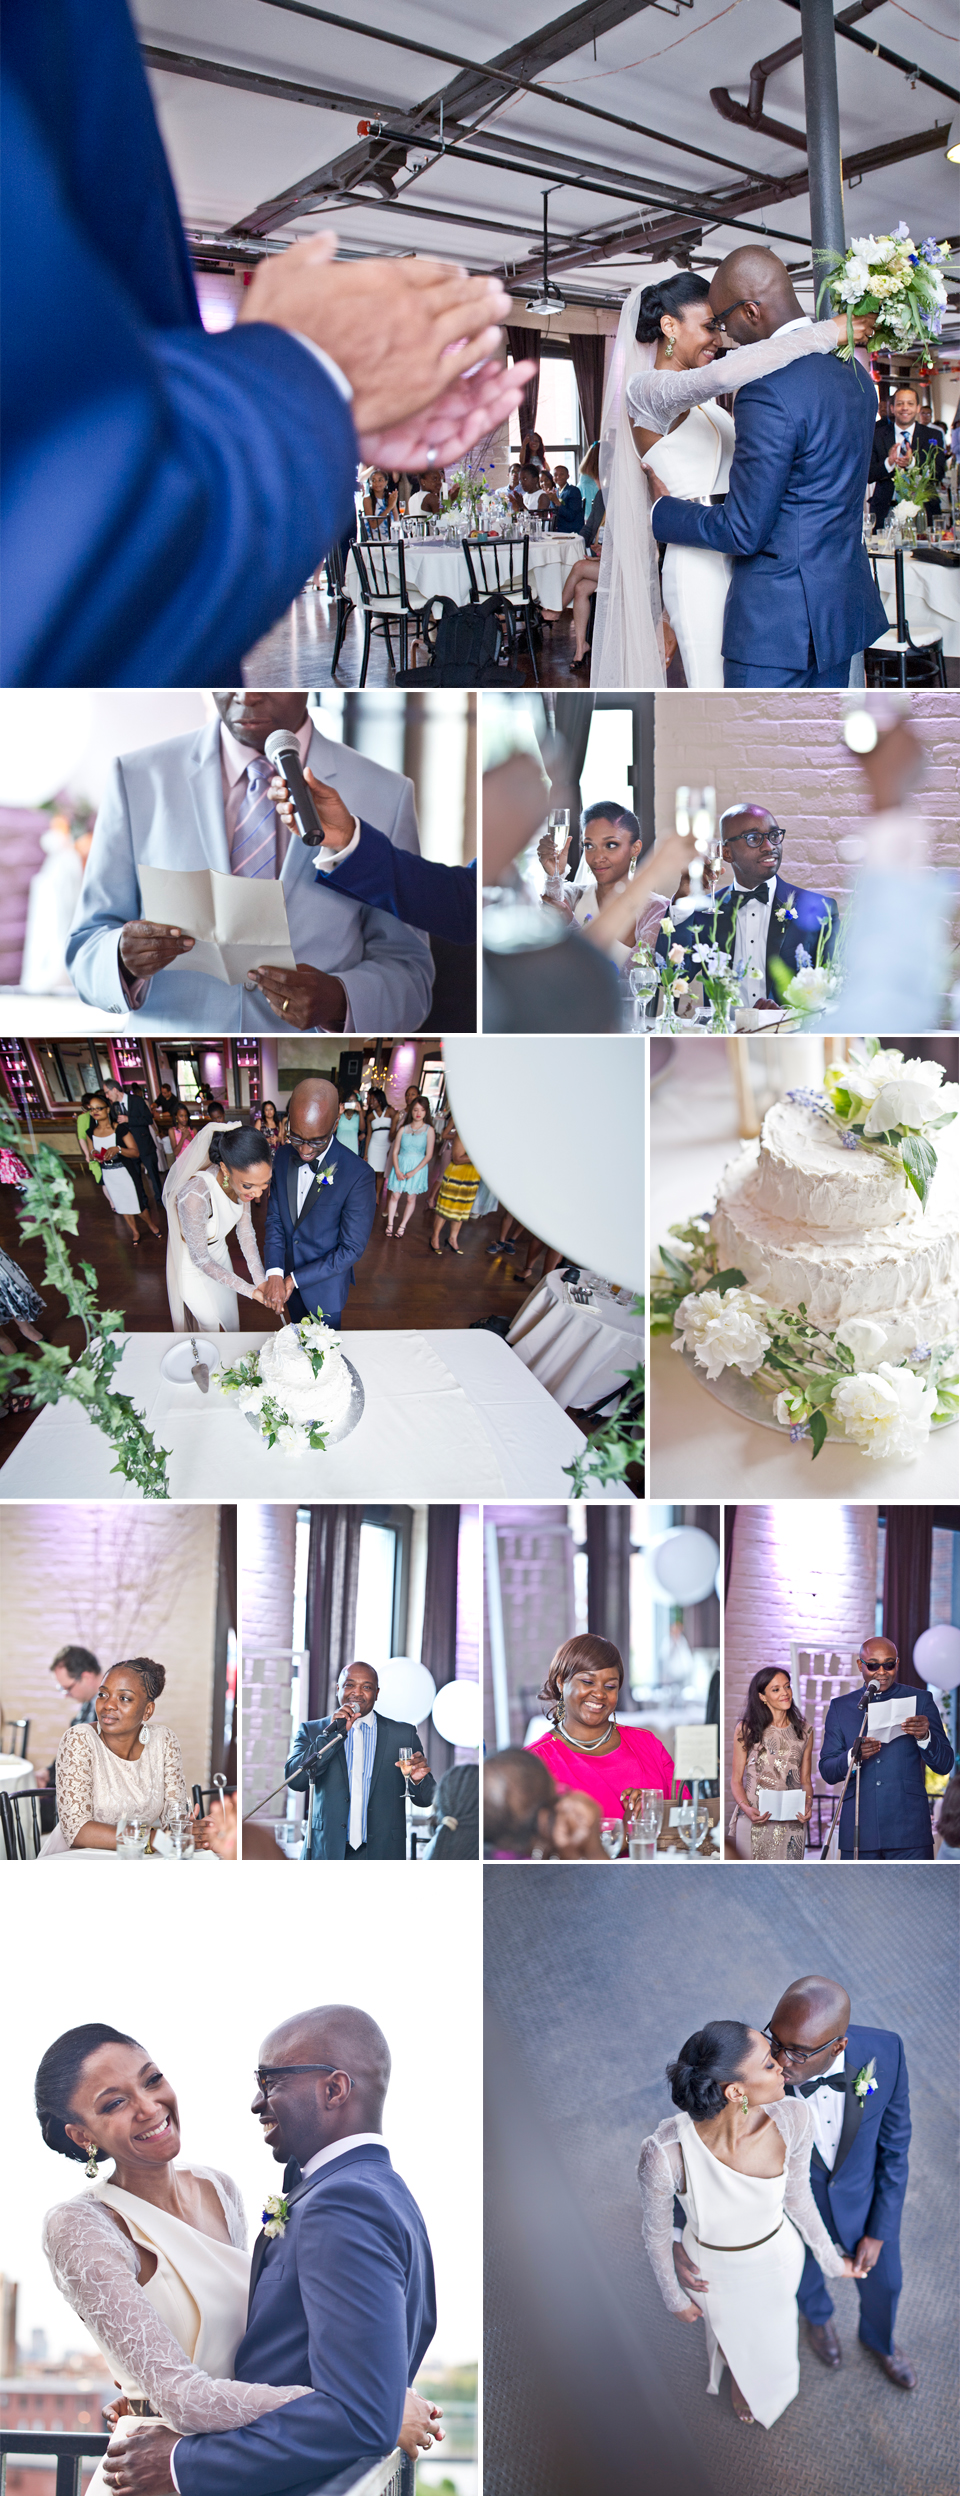 Montreal Wedding Photographer | Reception | Chateau St. Ambroise | Montreal Quebec | LMP Photography and Videography